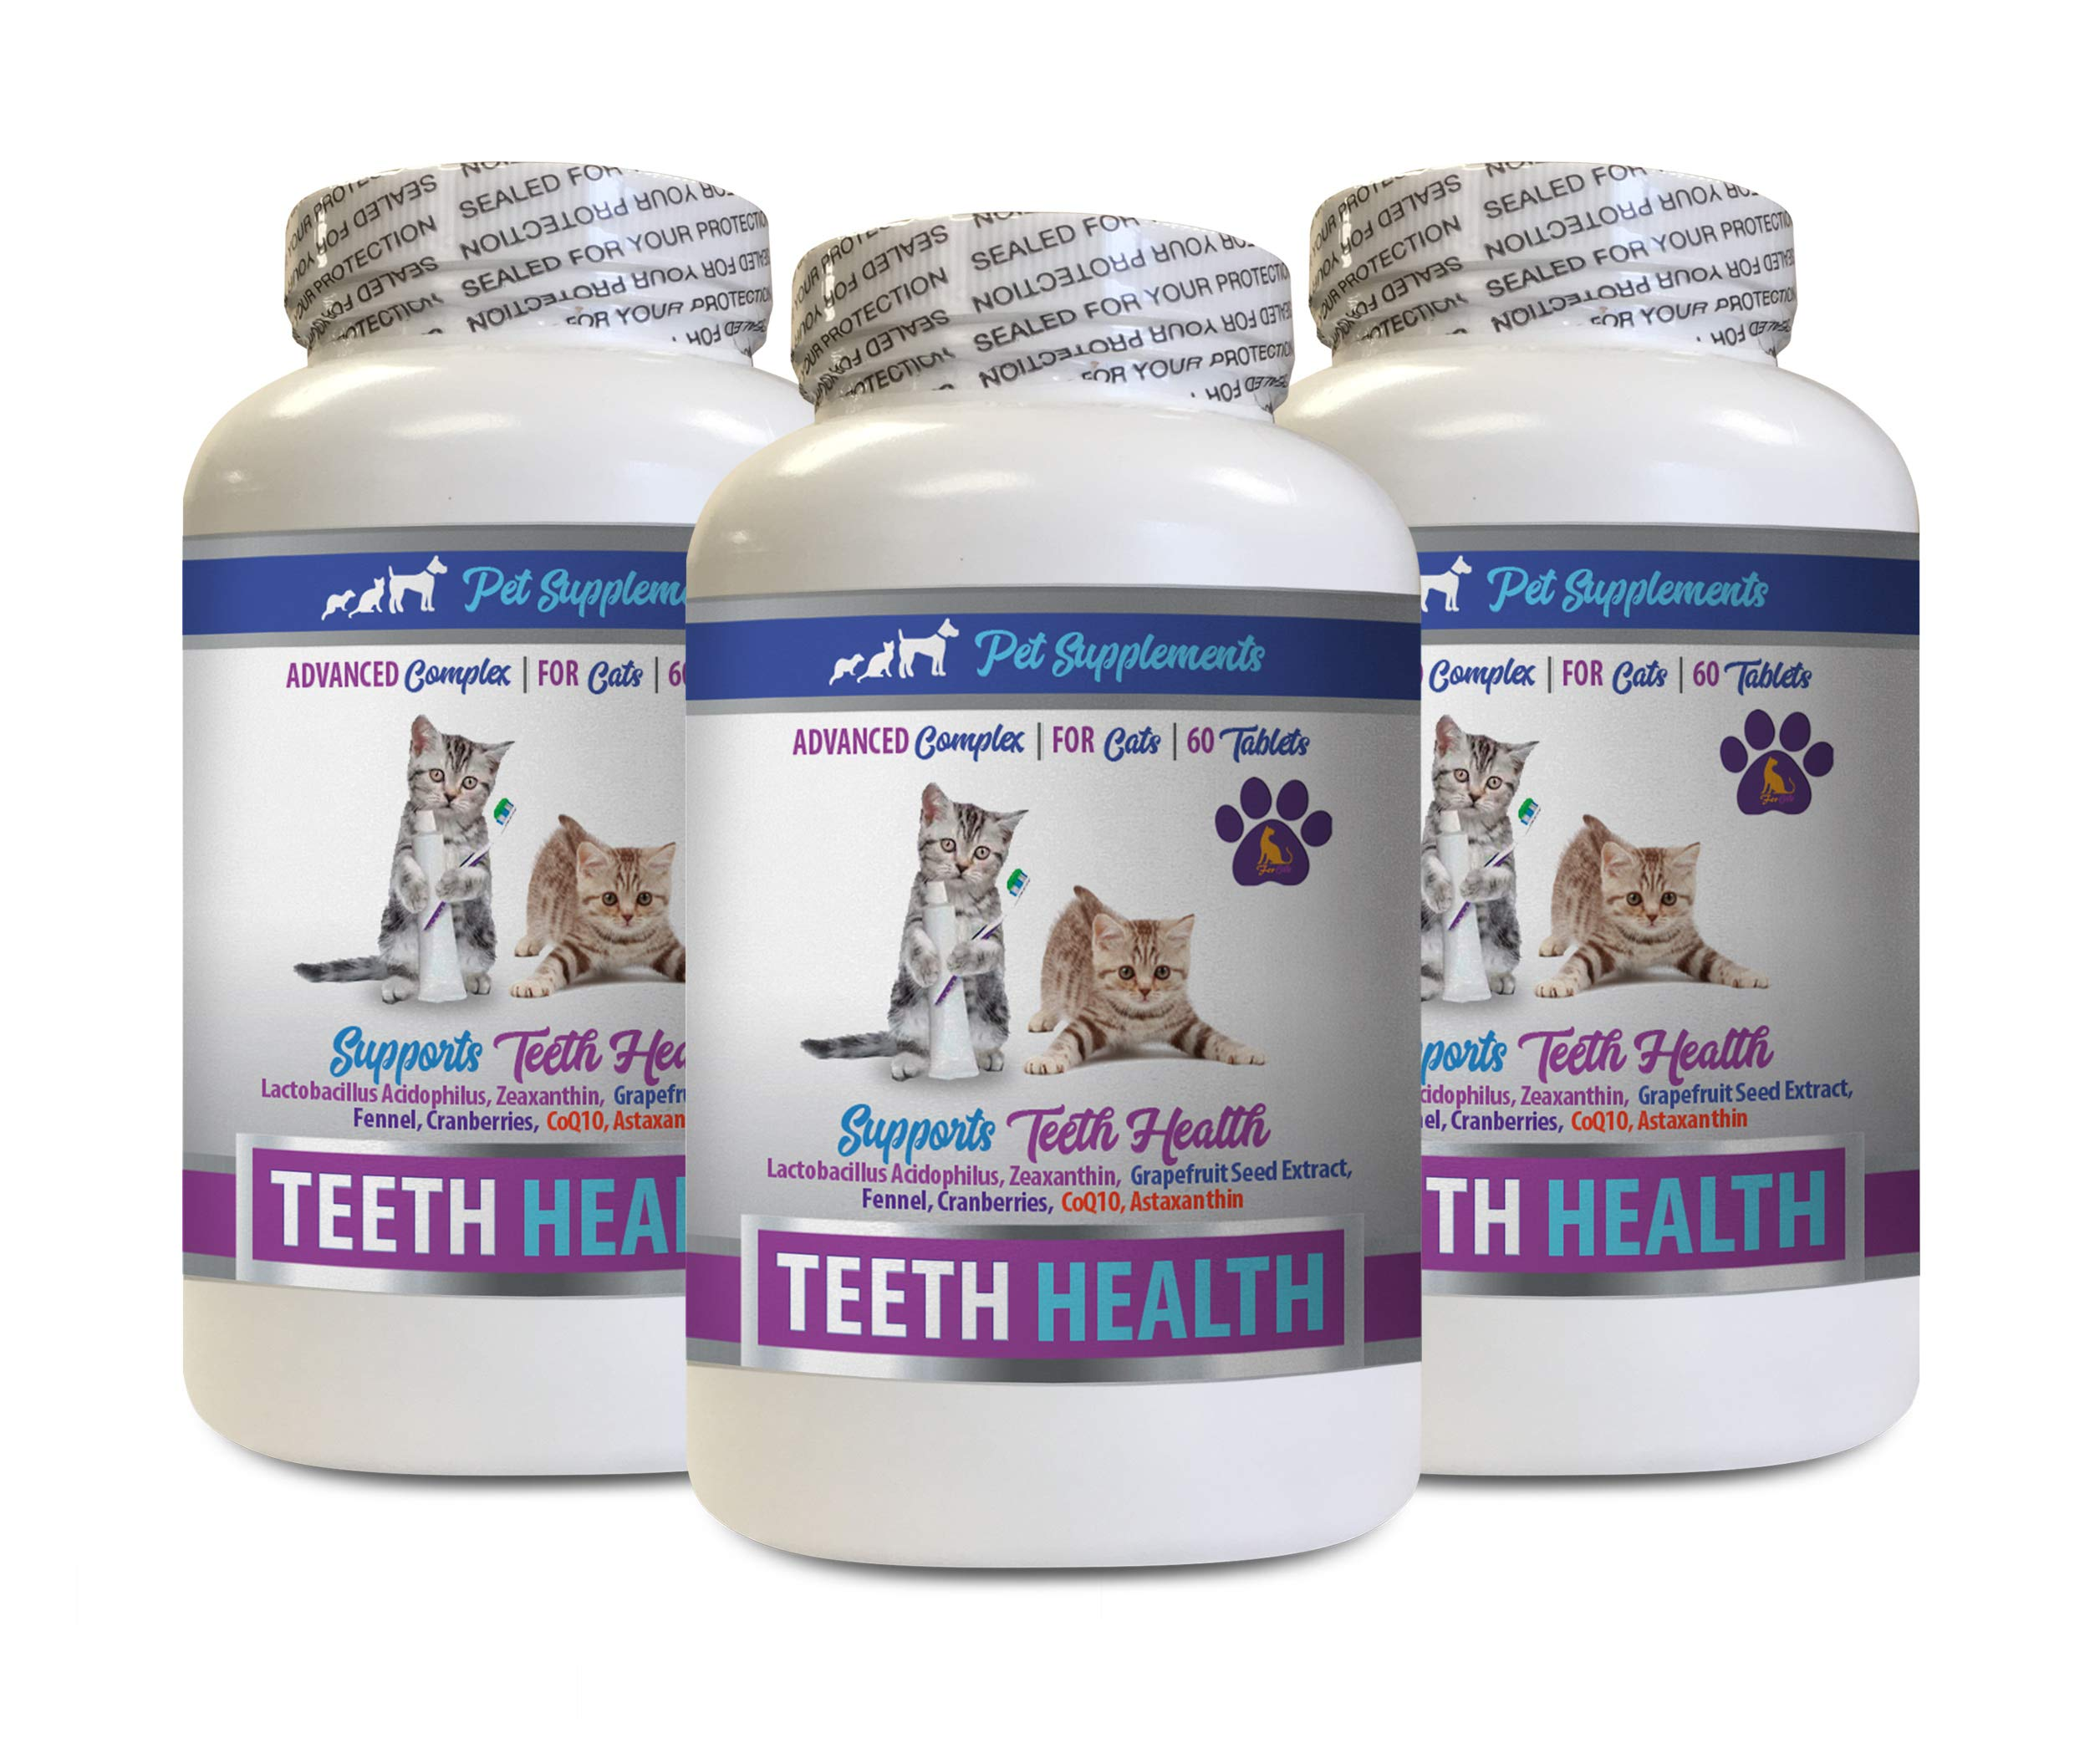 PET SUPPLEMENTS cat Dental Chews - CAT Teeth Health - Advanced Mouth Health Complex - Immune Boost - biotin for Cats - 3 Bottles (180 Tablets) by PET SUPPLEMENTS